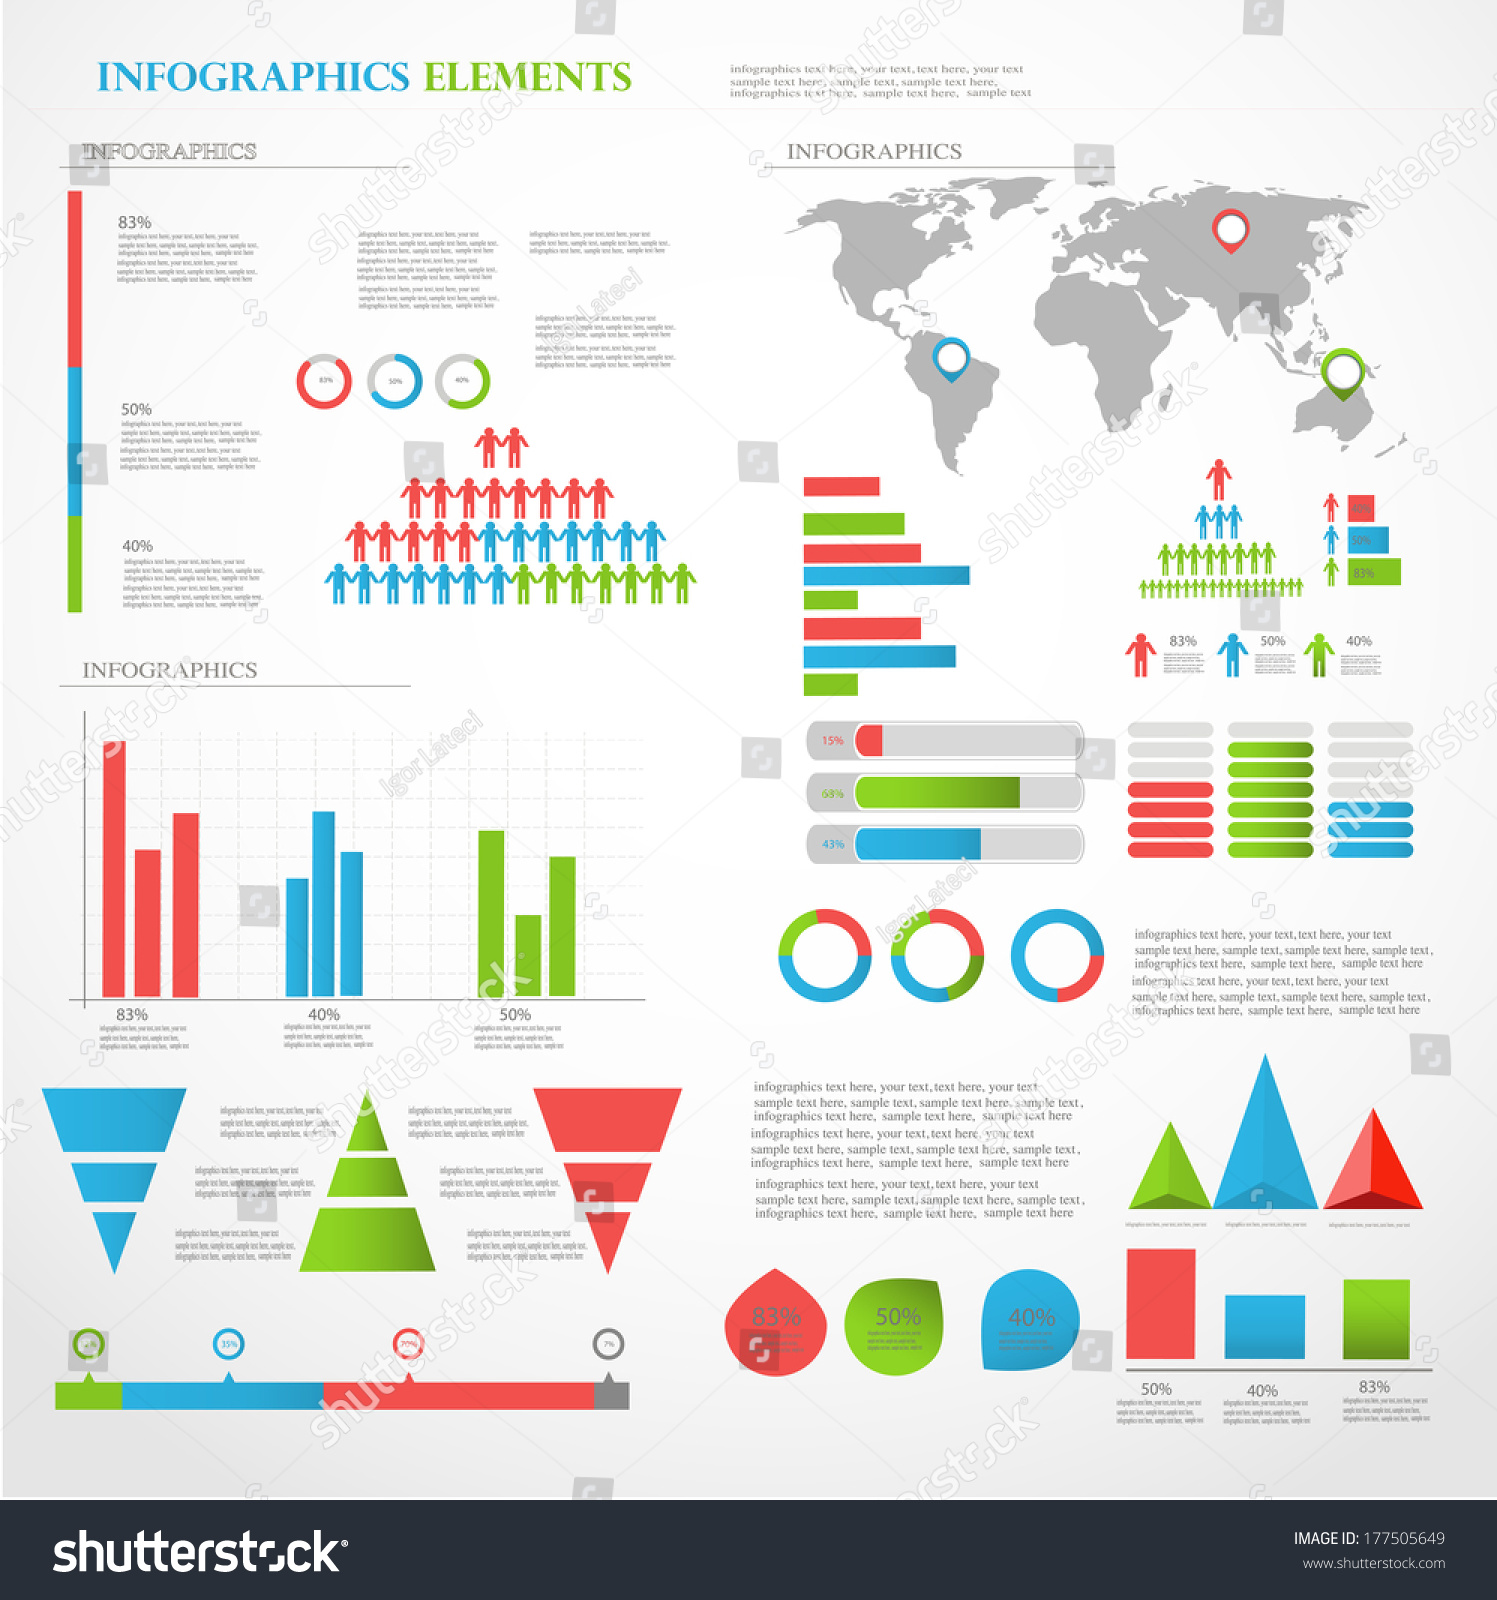 Set infographic elements world map information stock vector set of infographic elements world map and information graphics gumiabroncs Gallery